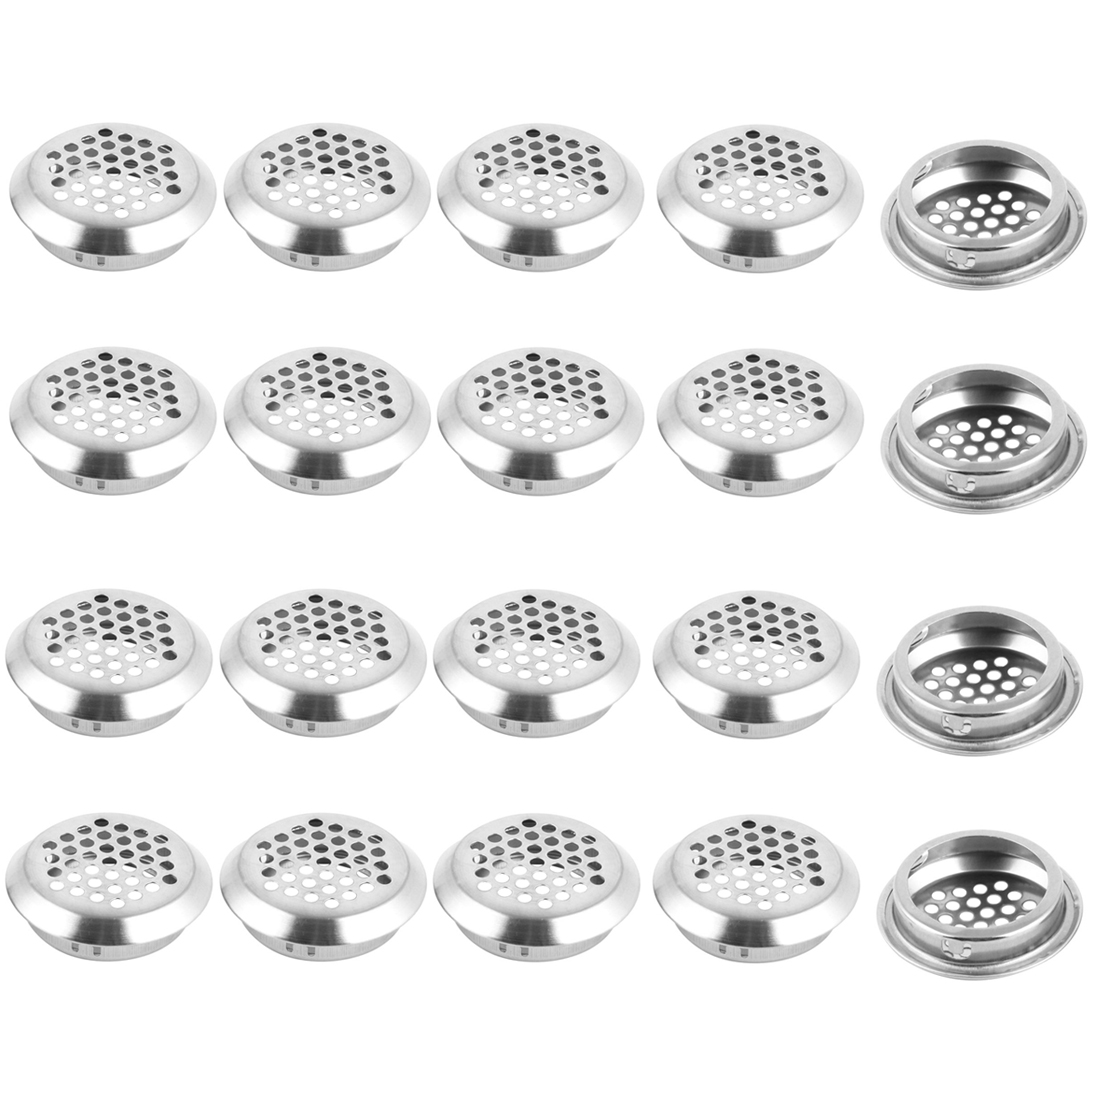 Furniture Cabinet Garderobe Perforated Mesh Air Vents Silver Tone 35mm Dia 20pcs